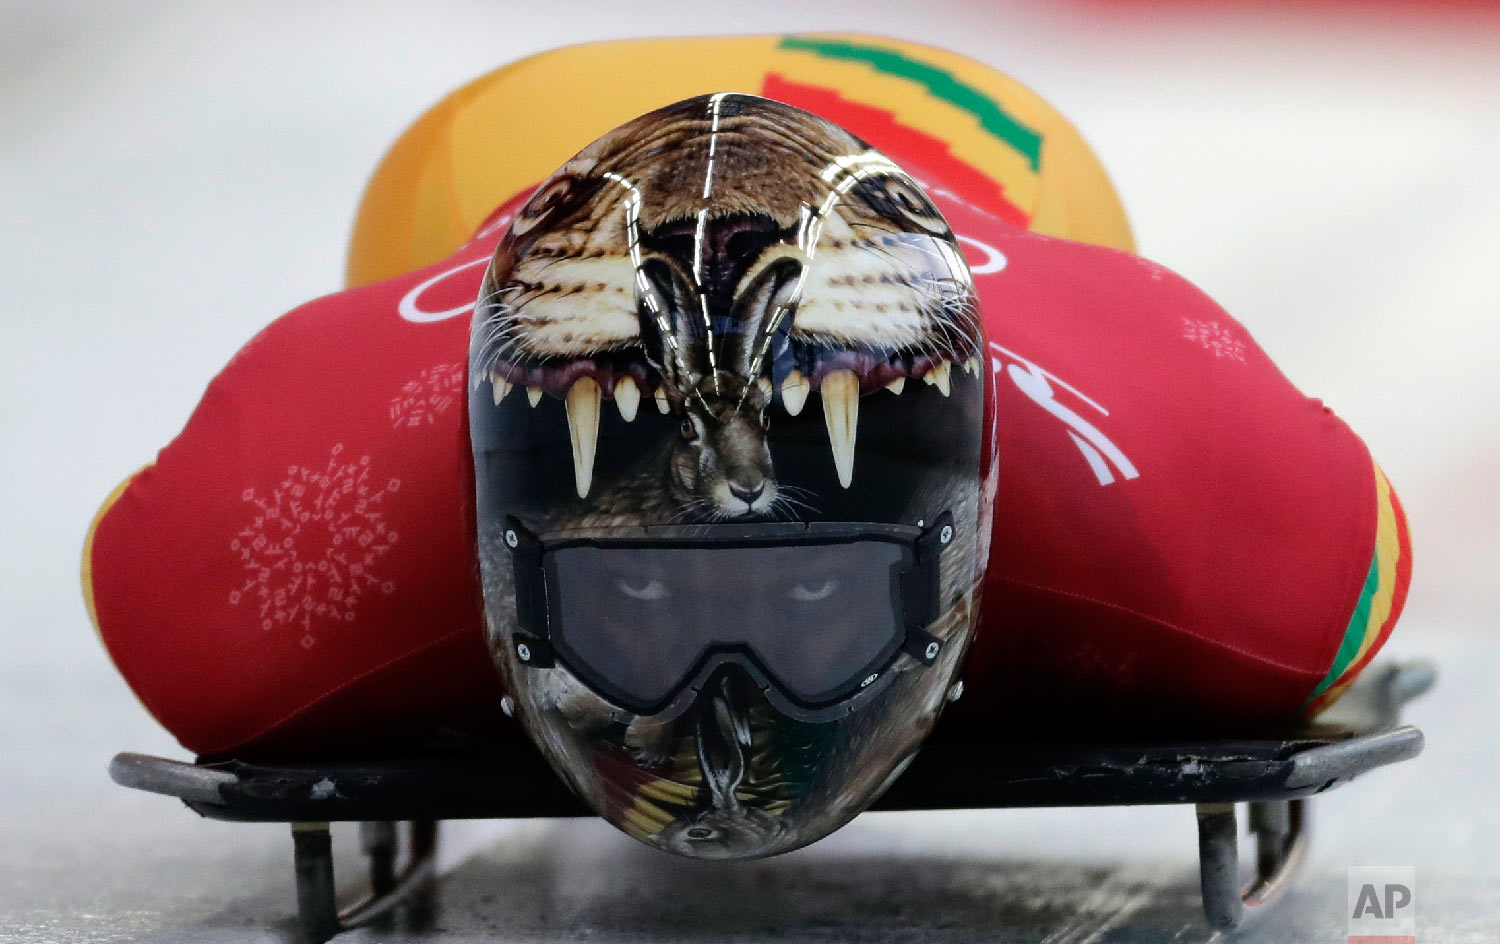 Akwasi Frimpong of Ghana starts his practice run during the men's skeleton training at the 2018 Winter Olympics in Pyeongchang, South Korea, Wednesday, Feb. 14, 2018. (AP Photo/Wong Maye-E)